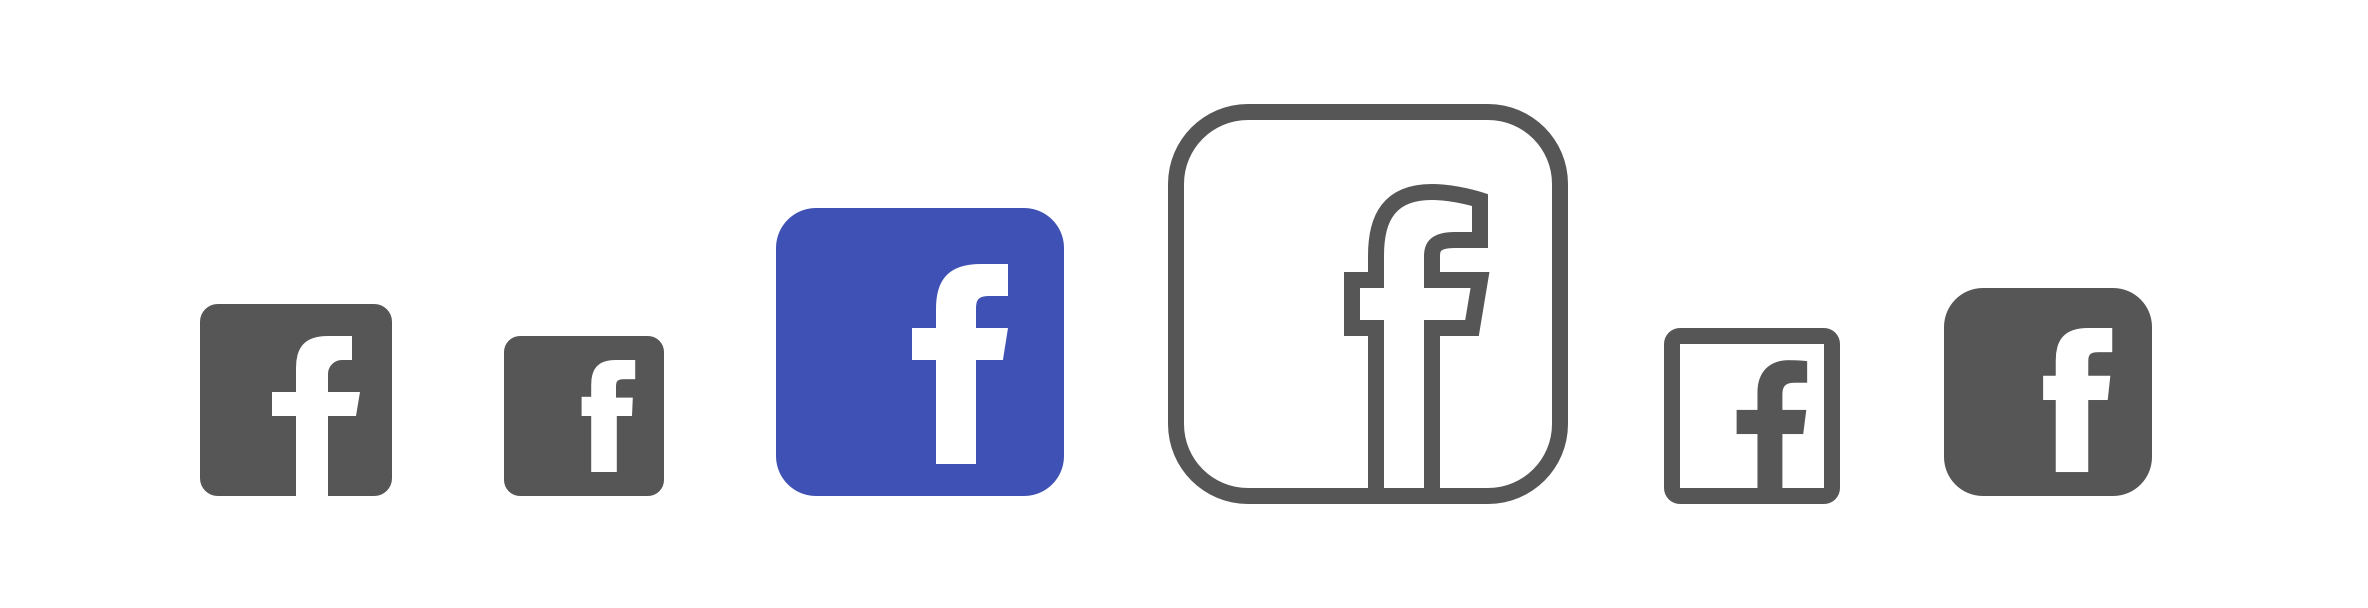 Icon free download and. Facebook logo 2016 png picture royalty free library